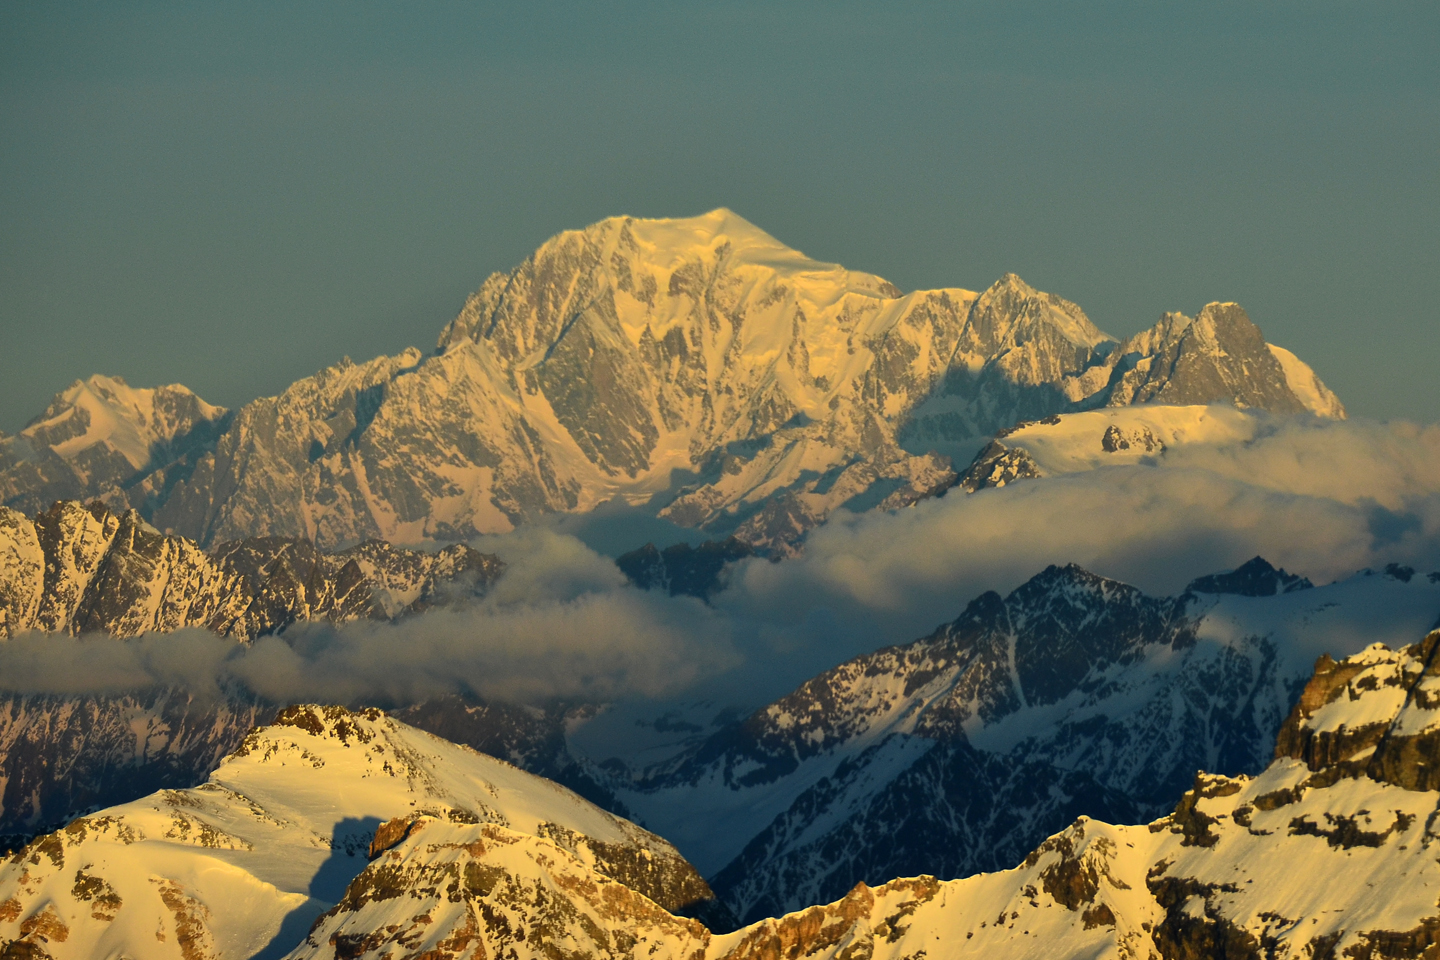 Mont Blanc seen from the summit of the Matterhorn Glacier Paradise